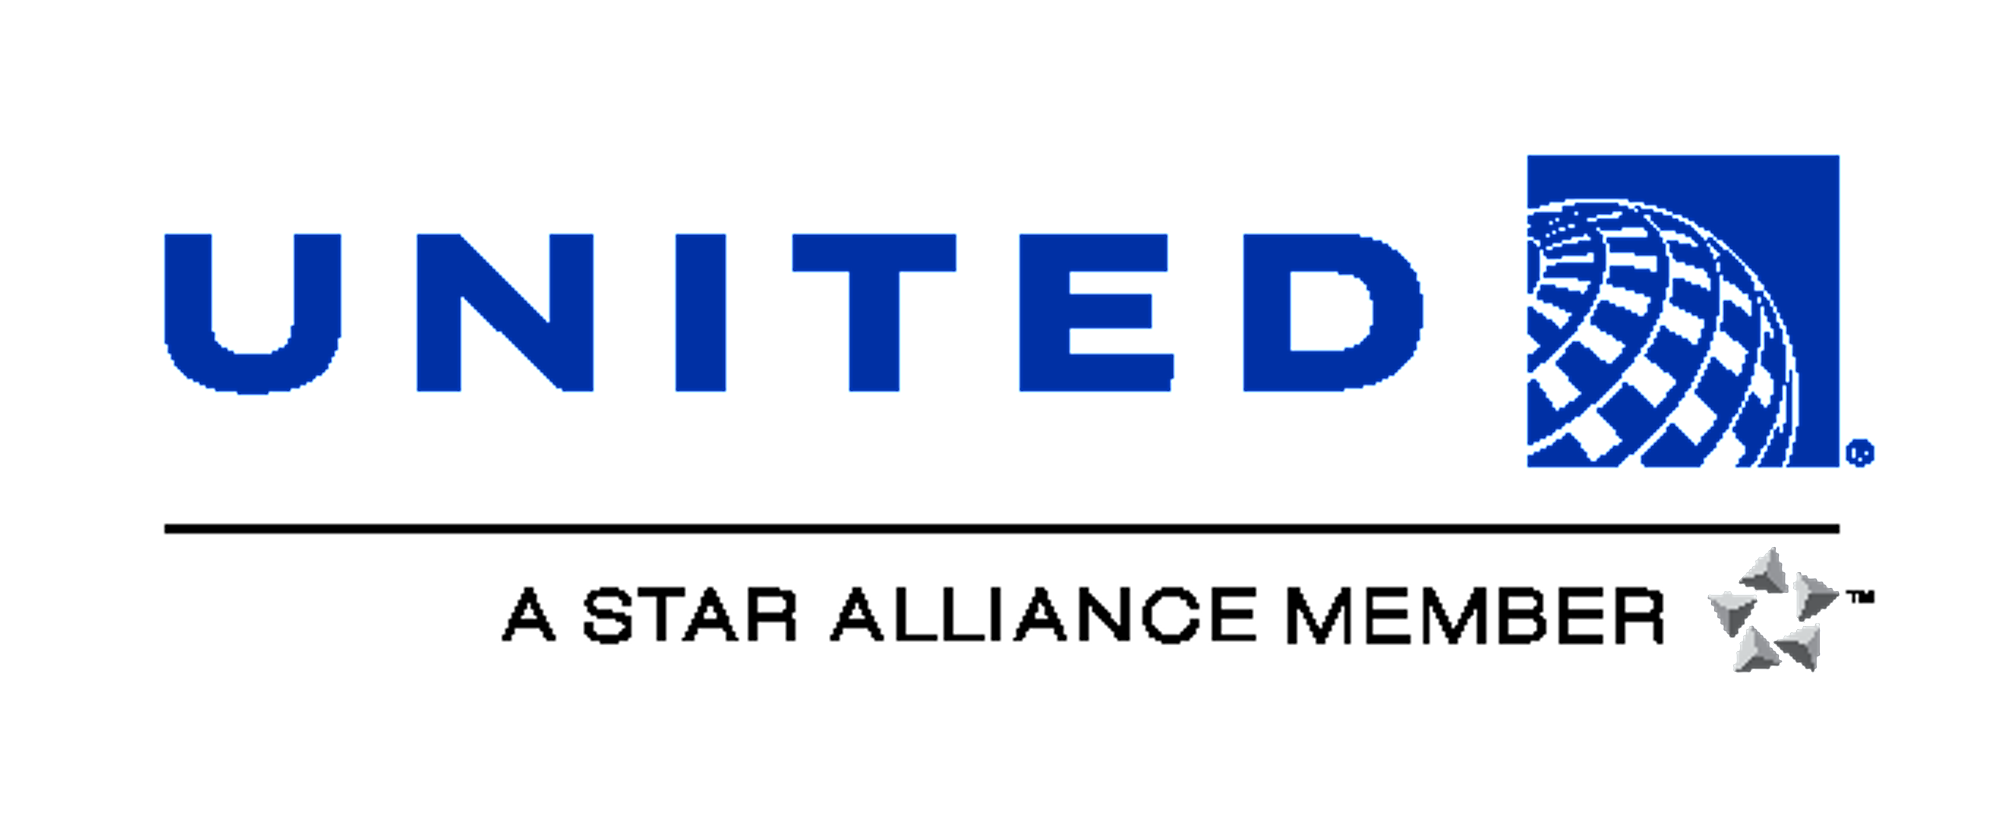 United Airlines Logo PNG - 176608